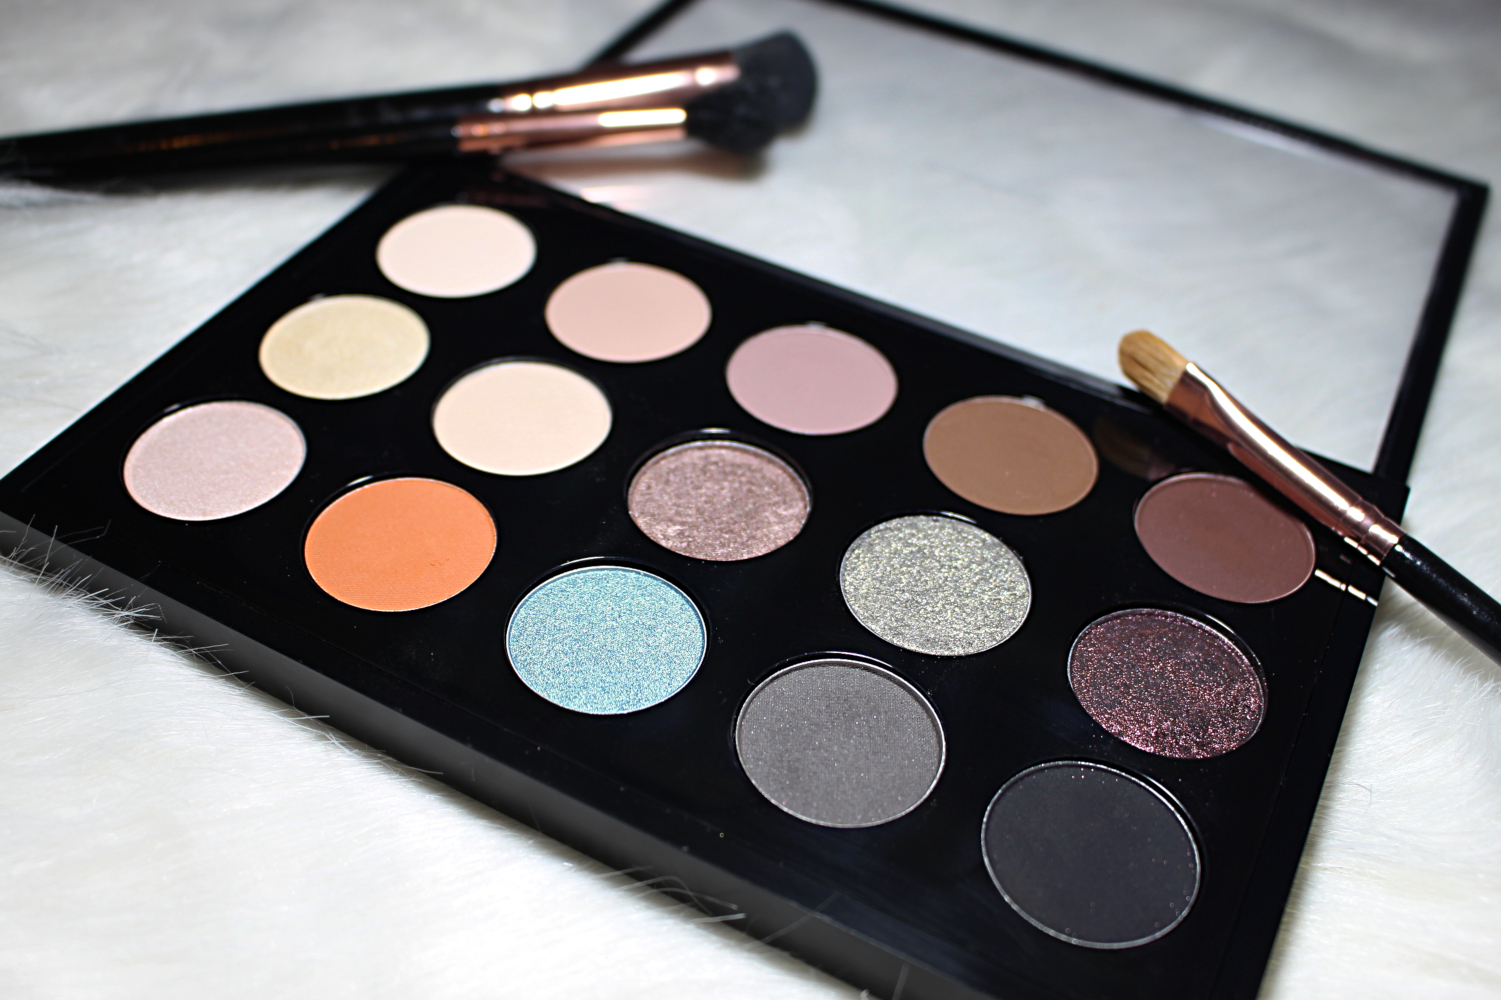 mac eyeshadow pro palette filled with eyeshadow pans